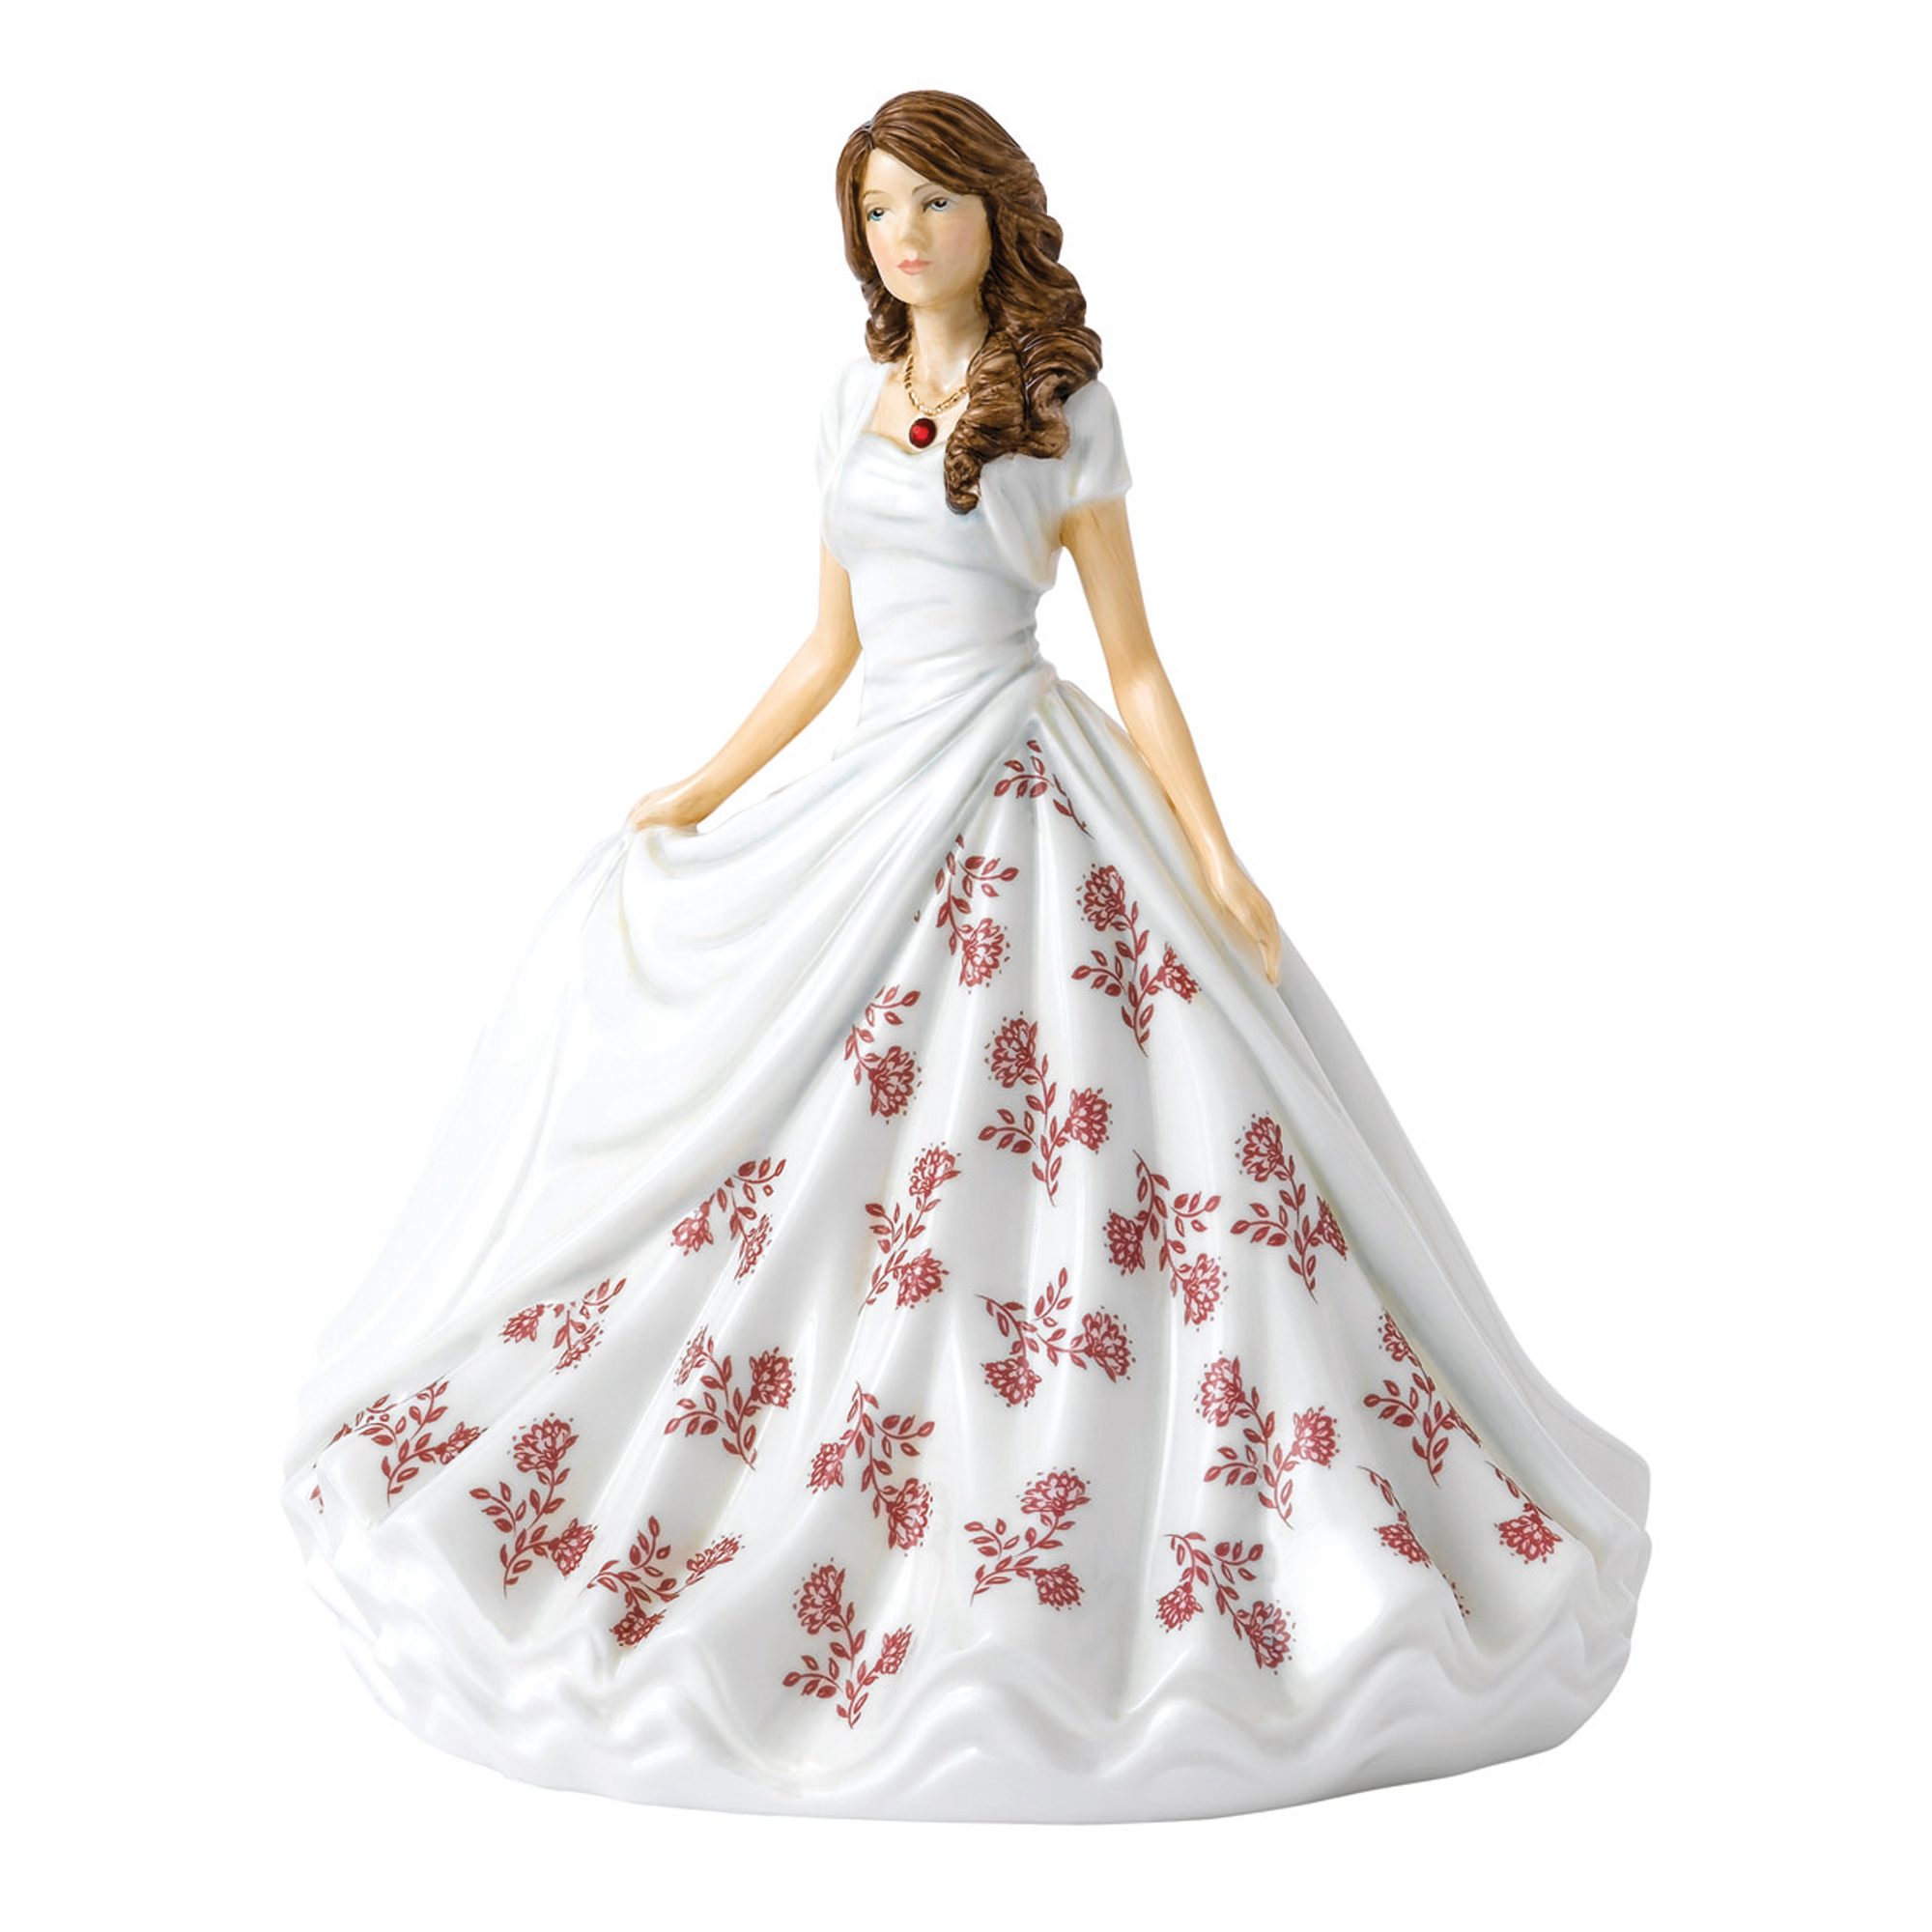 January (Garnet) HN5897 Royal Doulton Figurine